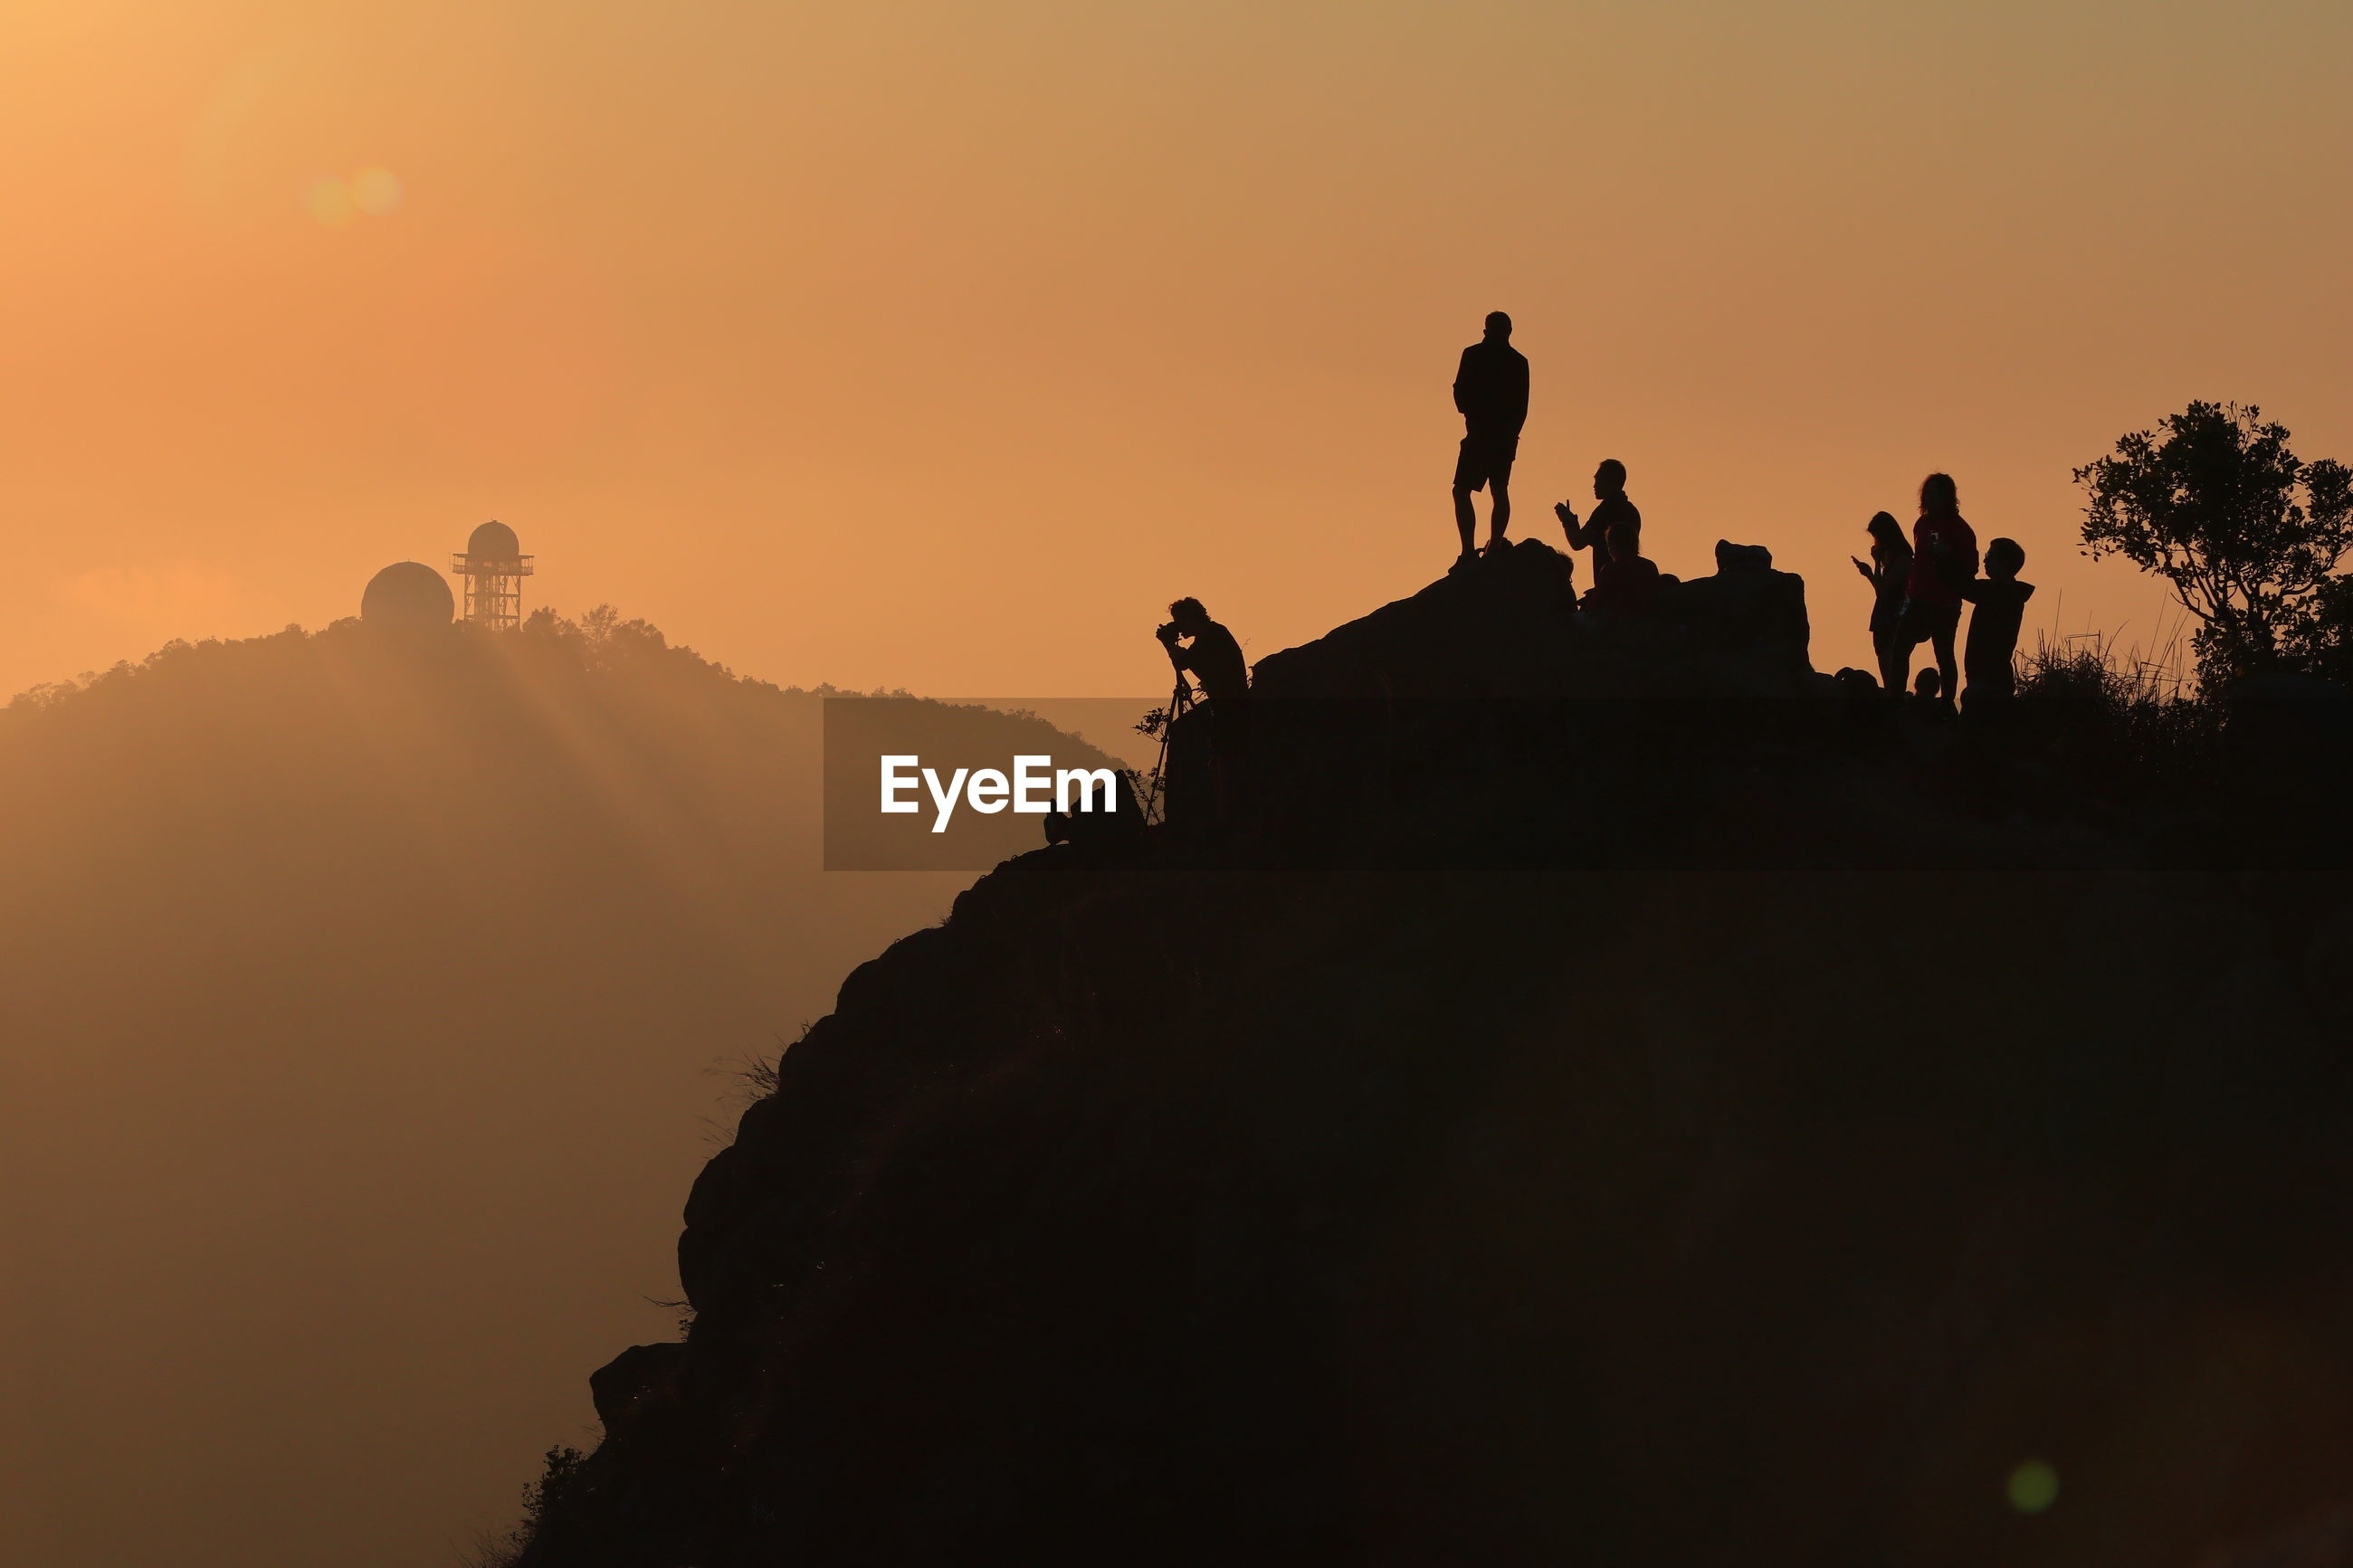 Silhouette man on mountain during sunset